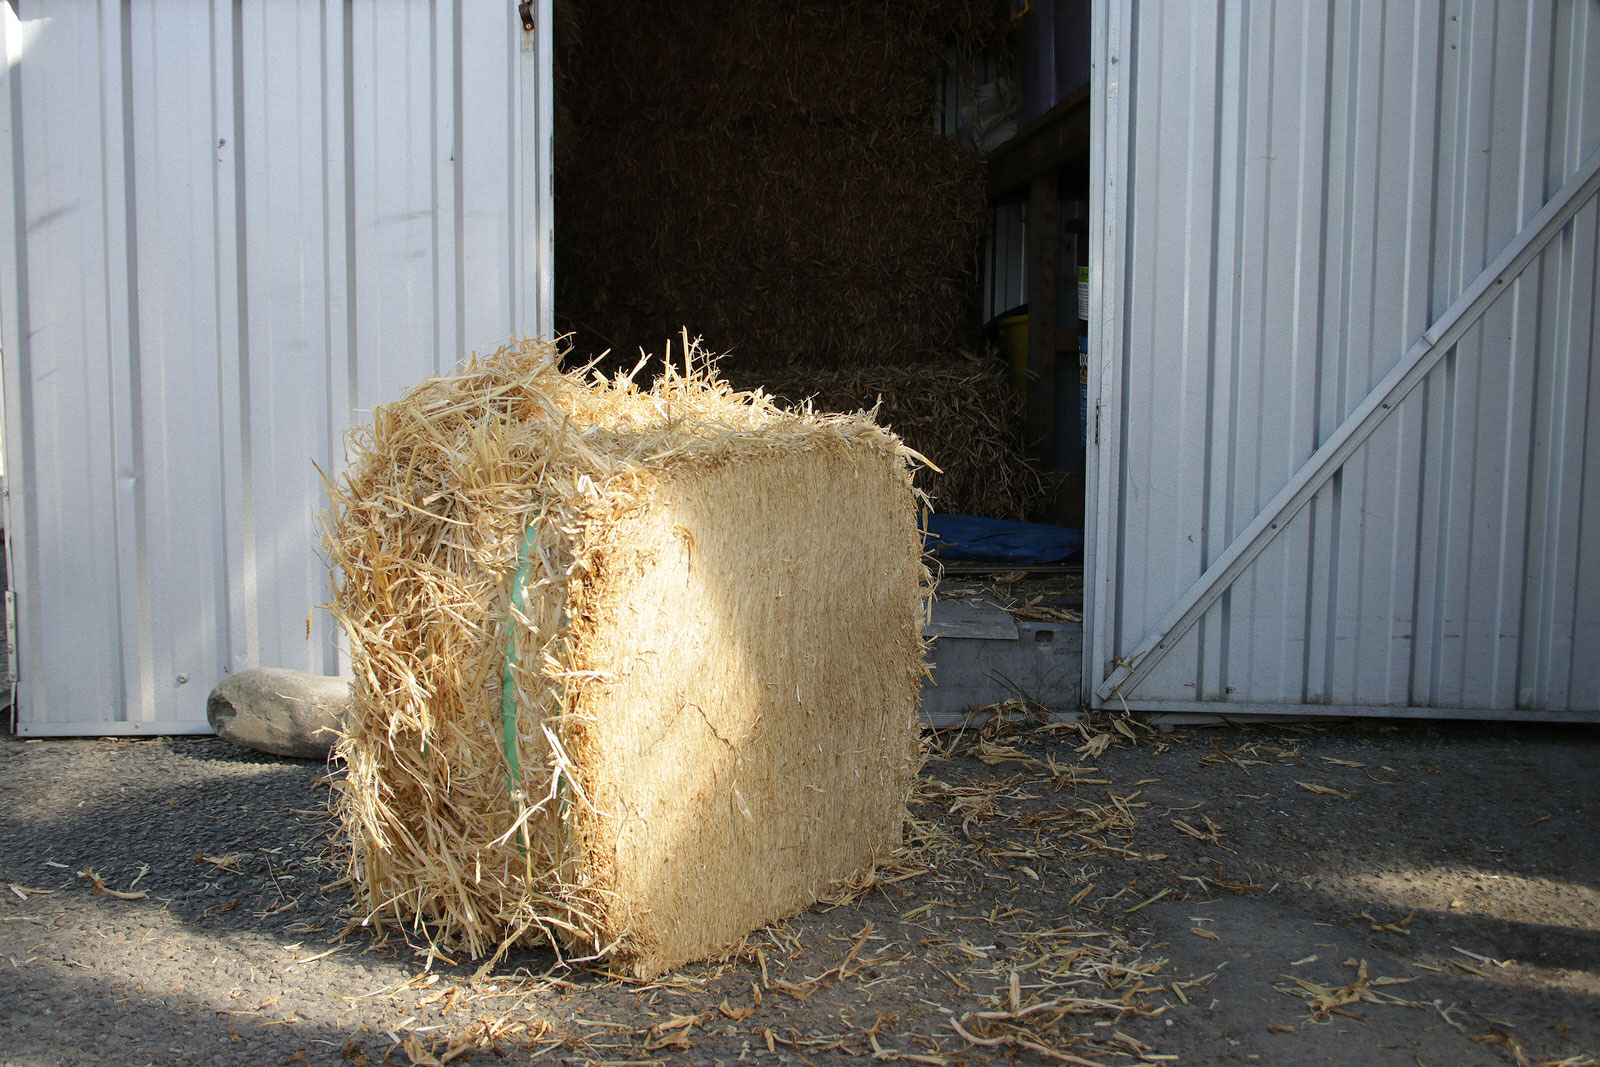 Barley Straw-compressed-bale from Composting New Zealand